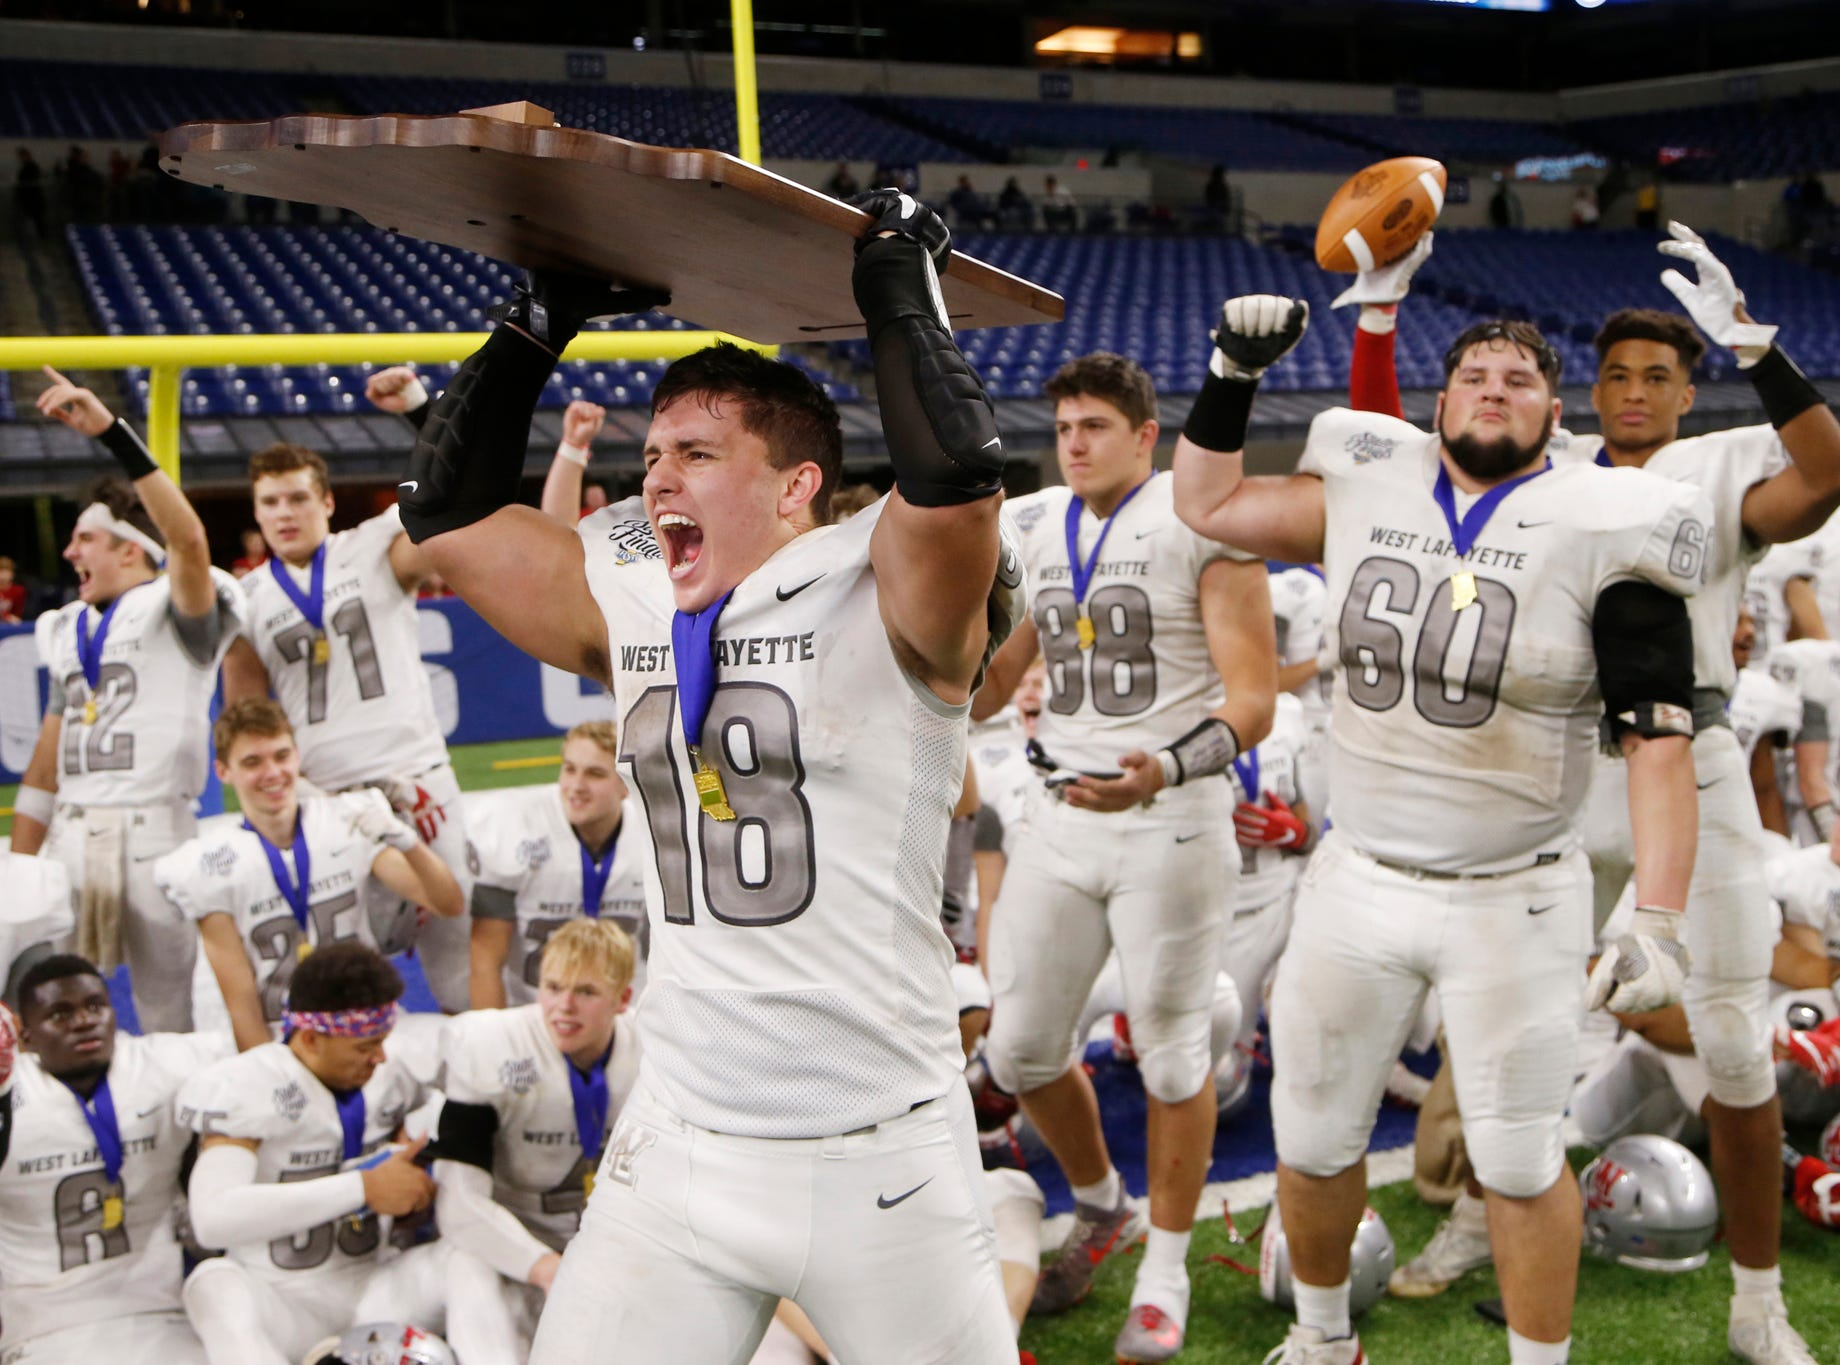 Sage Hood of West Lafayette hoists the Class 3A state title trophy after the Red Devils defeated  Evansville Memorial 47-42 in the Class 3A State Championship Saturday, November 24, 2018, at Lucas Oil Stadium in Indianapolis.